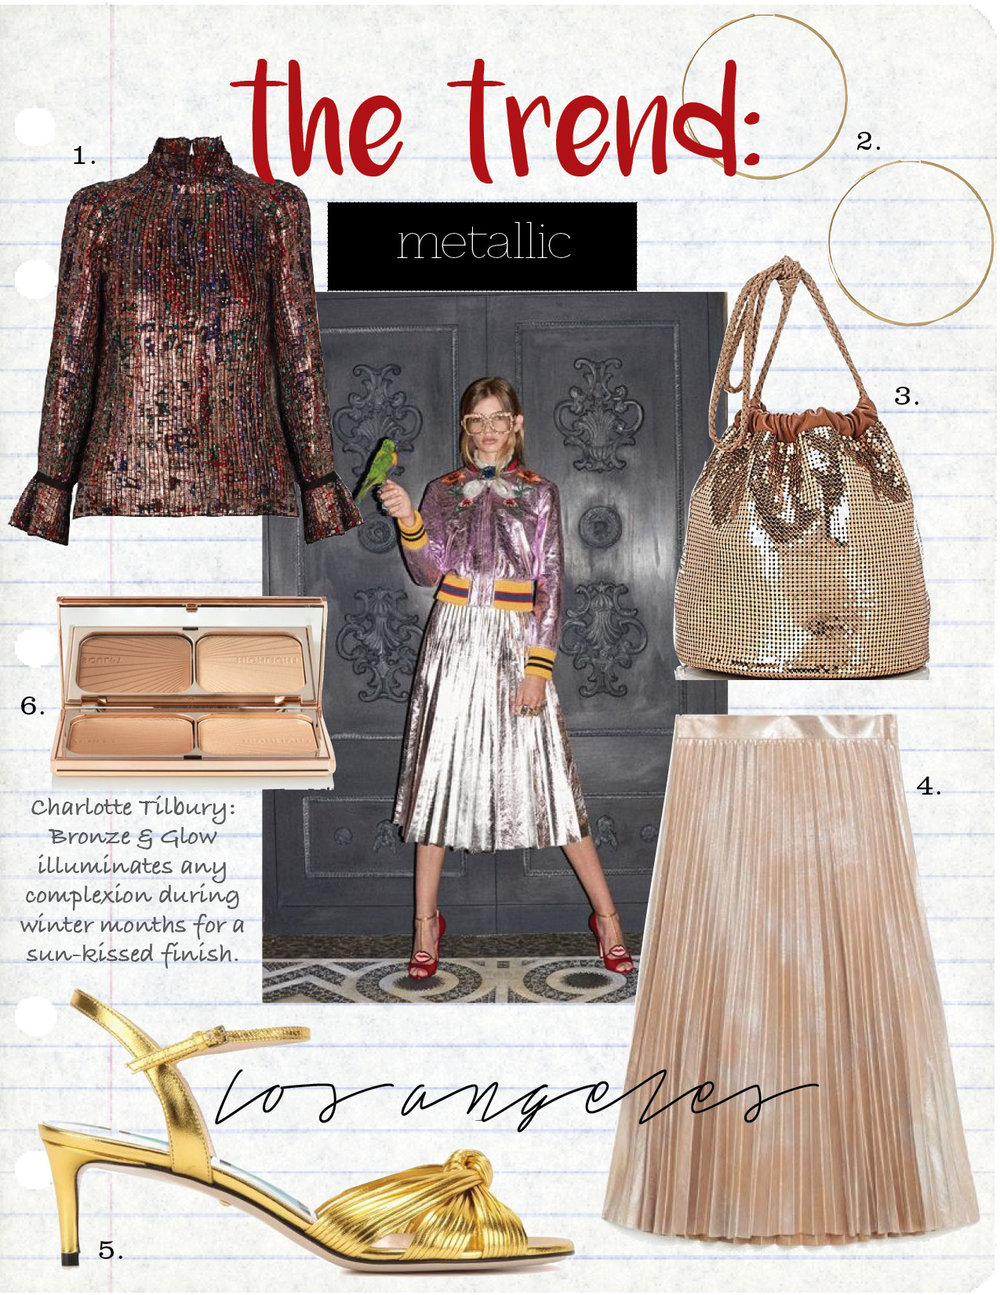 1. VANESSA BRUNO FLORENCE FLORAL-PRINT PLEATED BLOUSE, $701,  MATCHESFASHION.COM  2. MAGDA BUTRYM GOLD LARGE HOOP EARRINGS, $558,  FWRD.COM  3. PACO RABANNE SAC MESH BUCKET BAG, $1090,  BARNEYS.COM  4. ZARA METALLIC FINE PLEATED SKIRT, $69,  ZARA.COM  5. GUCCI LEATHER SANDALS, $390,  MYTHERESA.COM  6. CHARLOTTE TILBURY FILMSTAR BRONZE & GLOW, $68,  NET-A-PORTER.COM